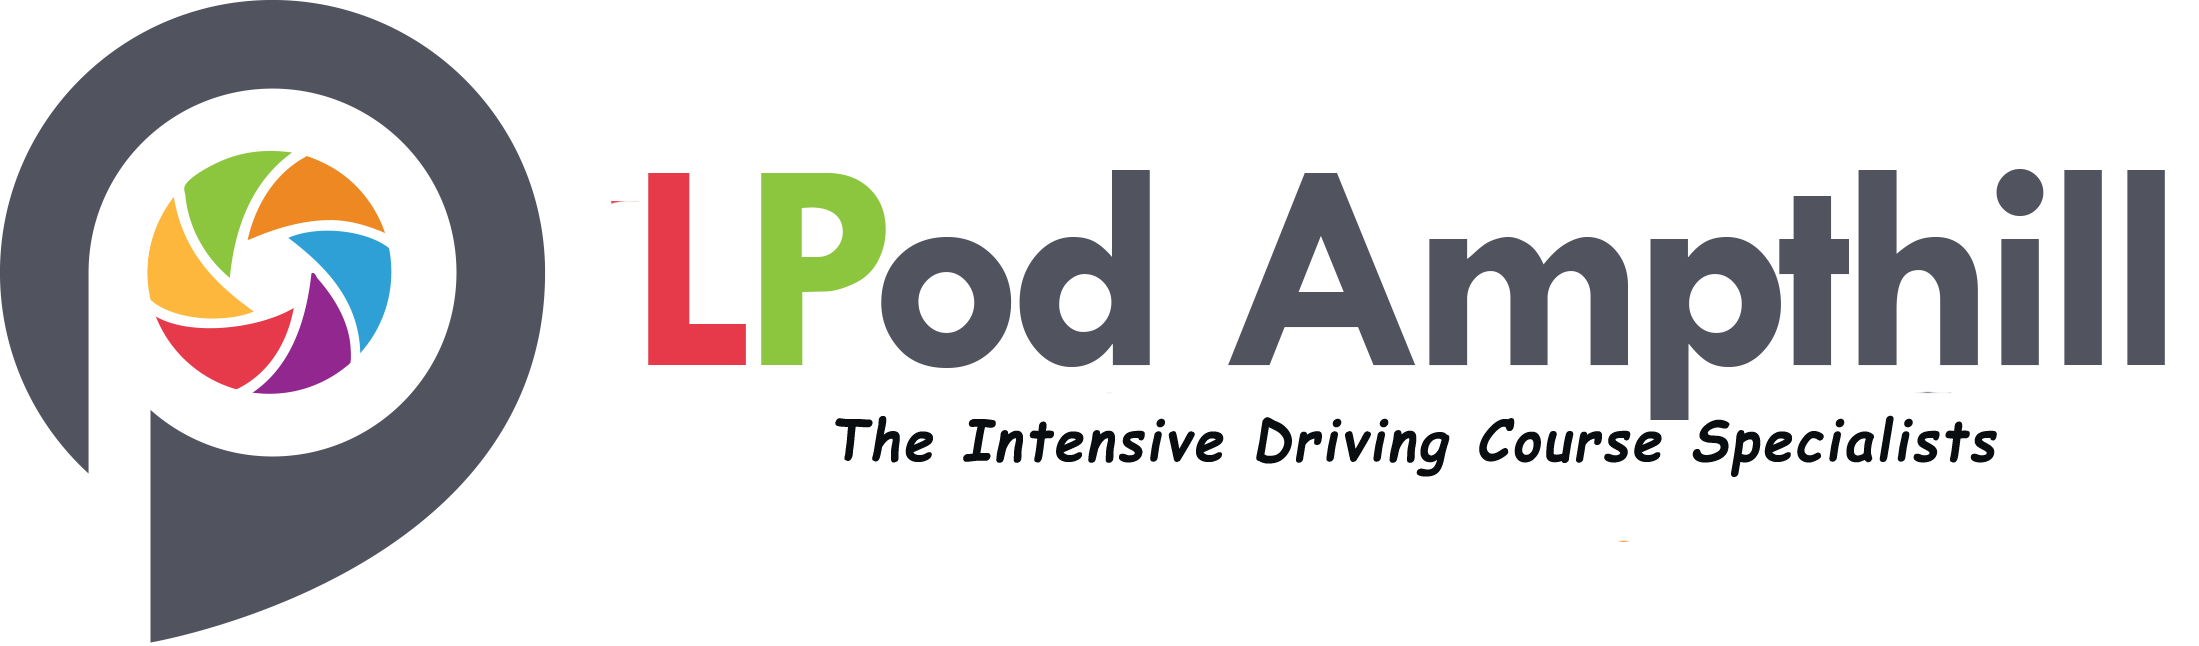 intensive driving courses Ampthill